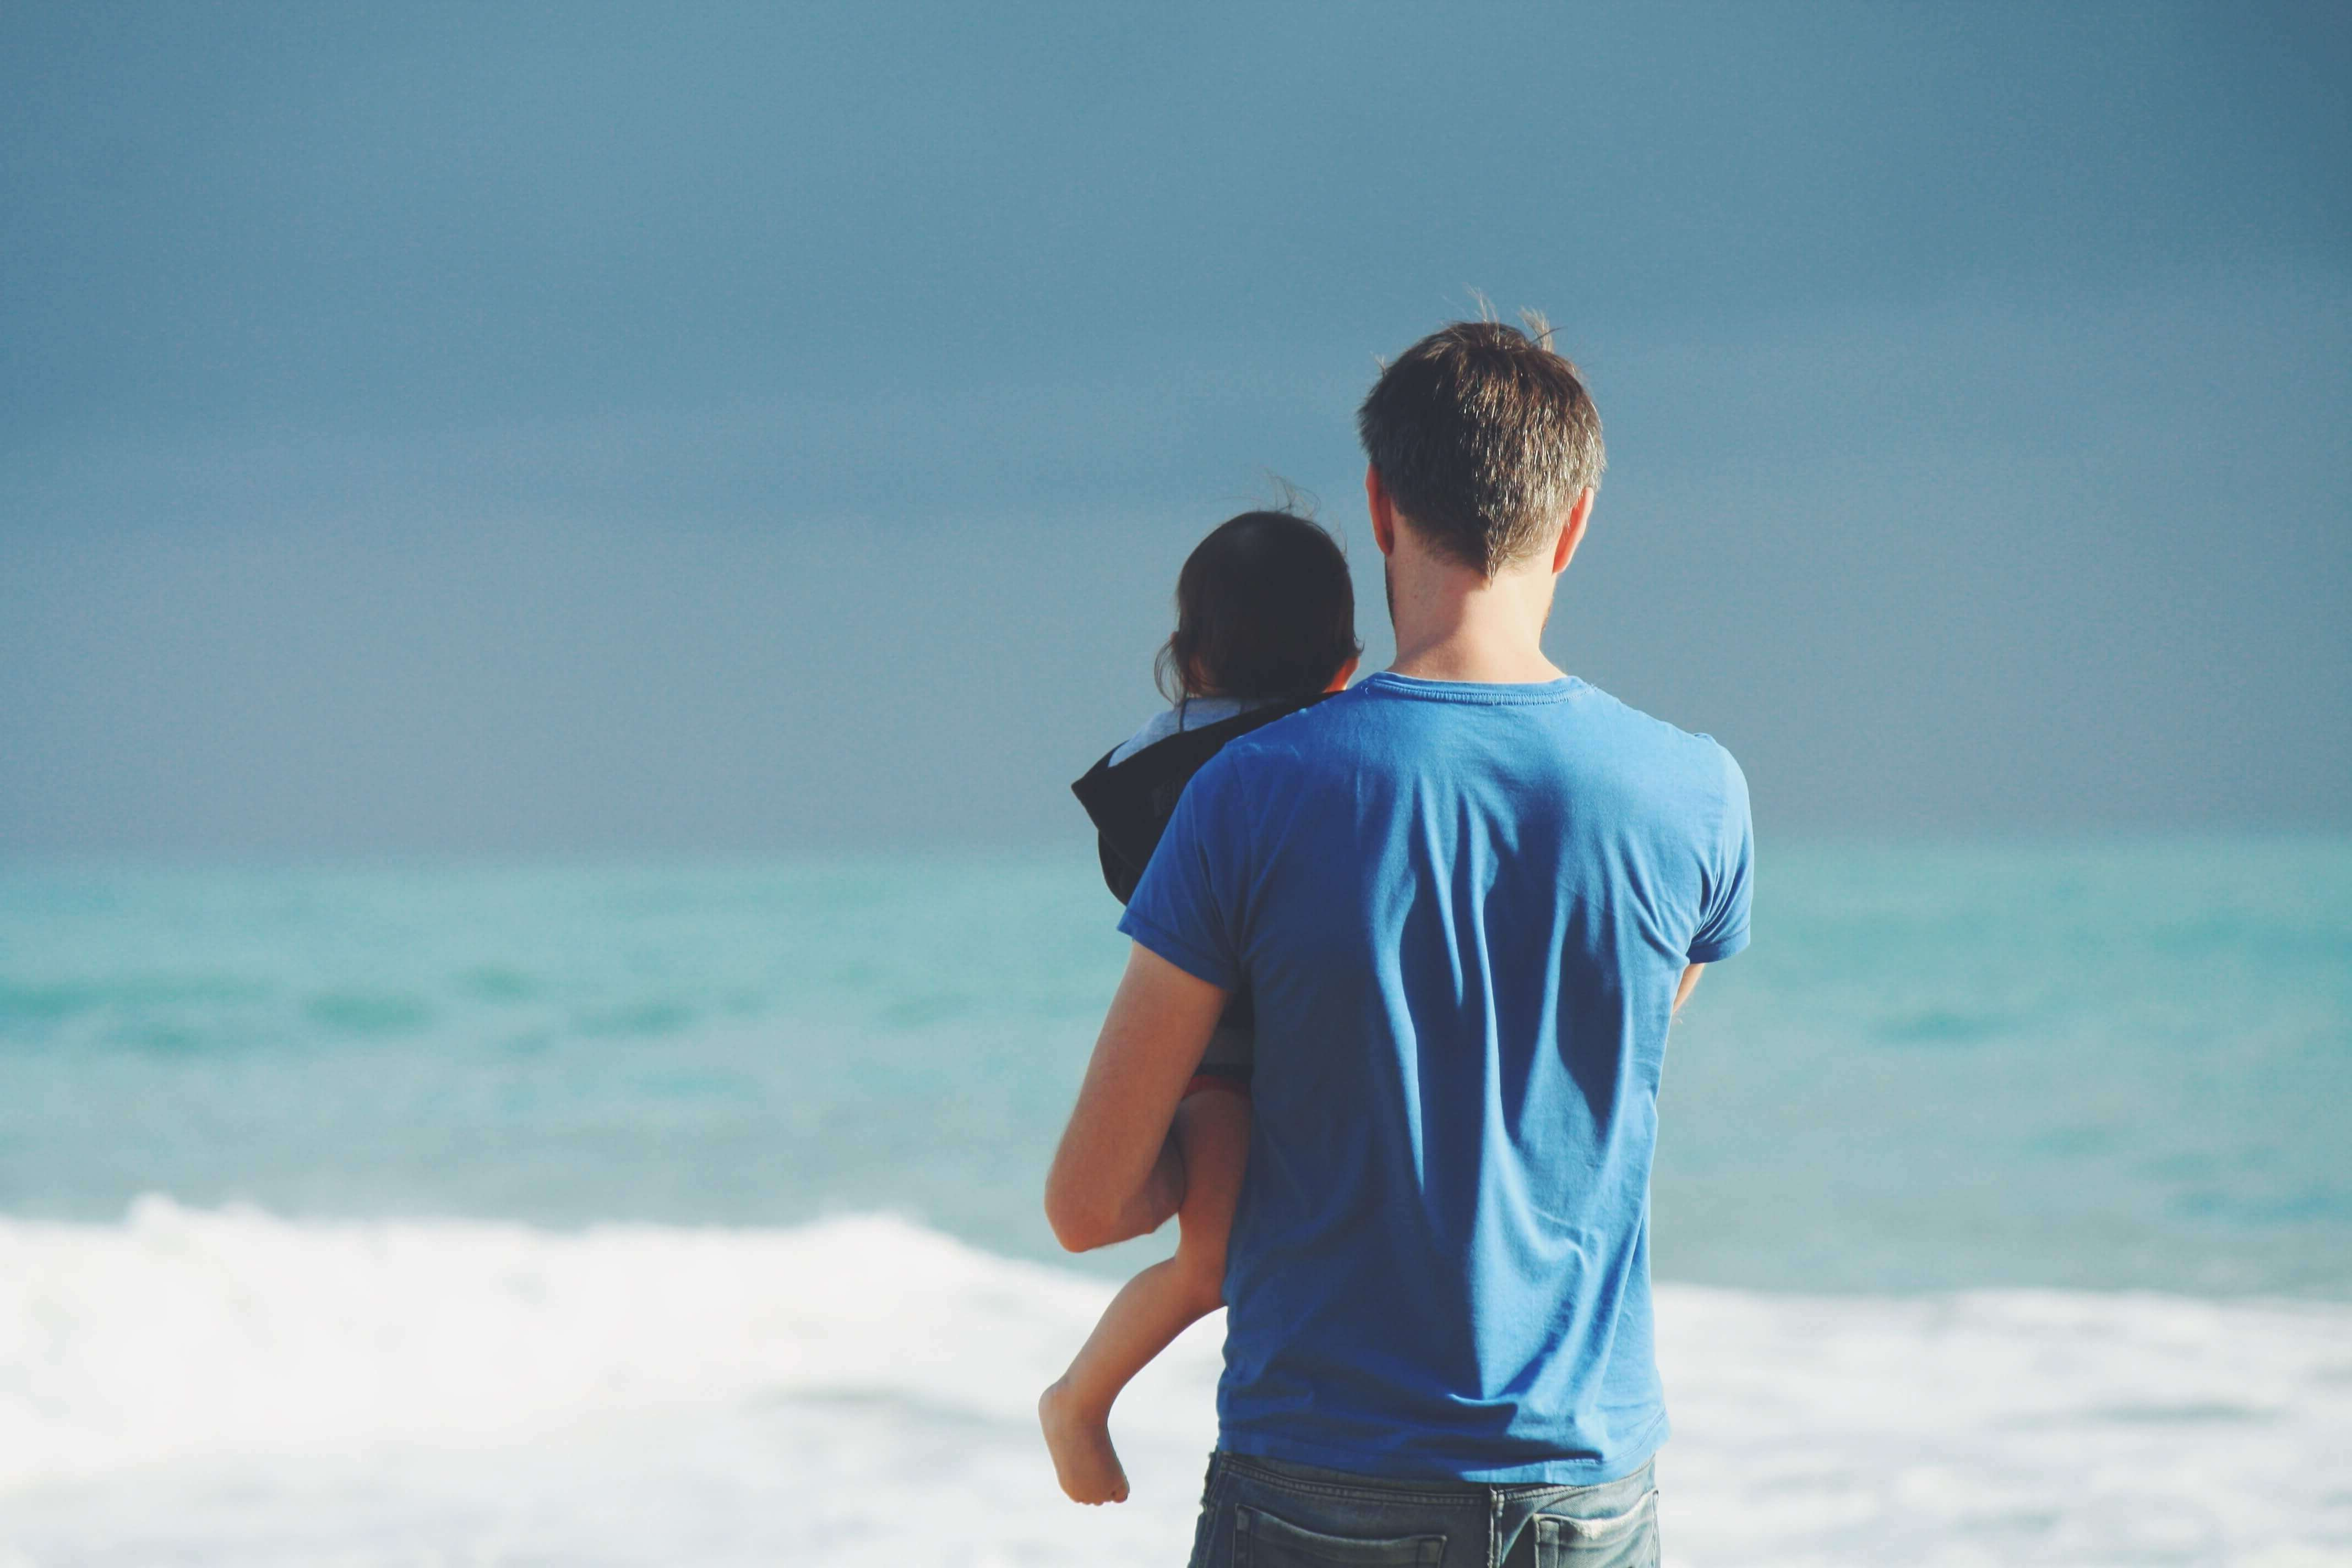 Man holding infant infront of a beach